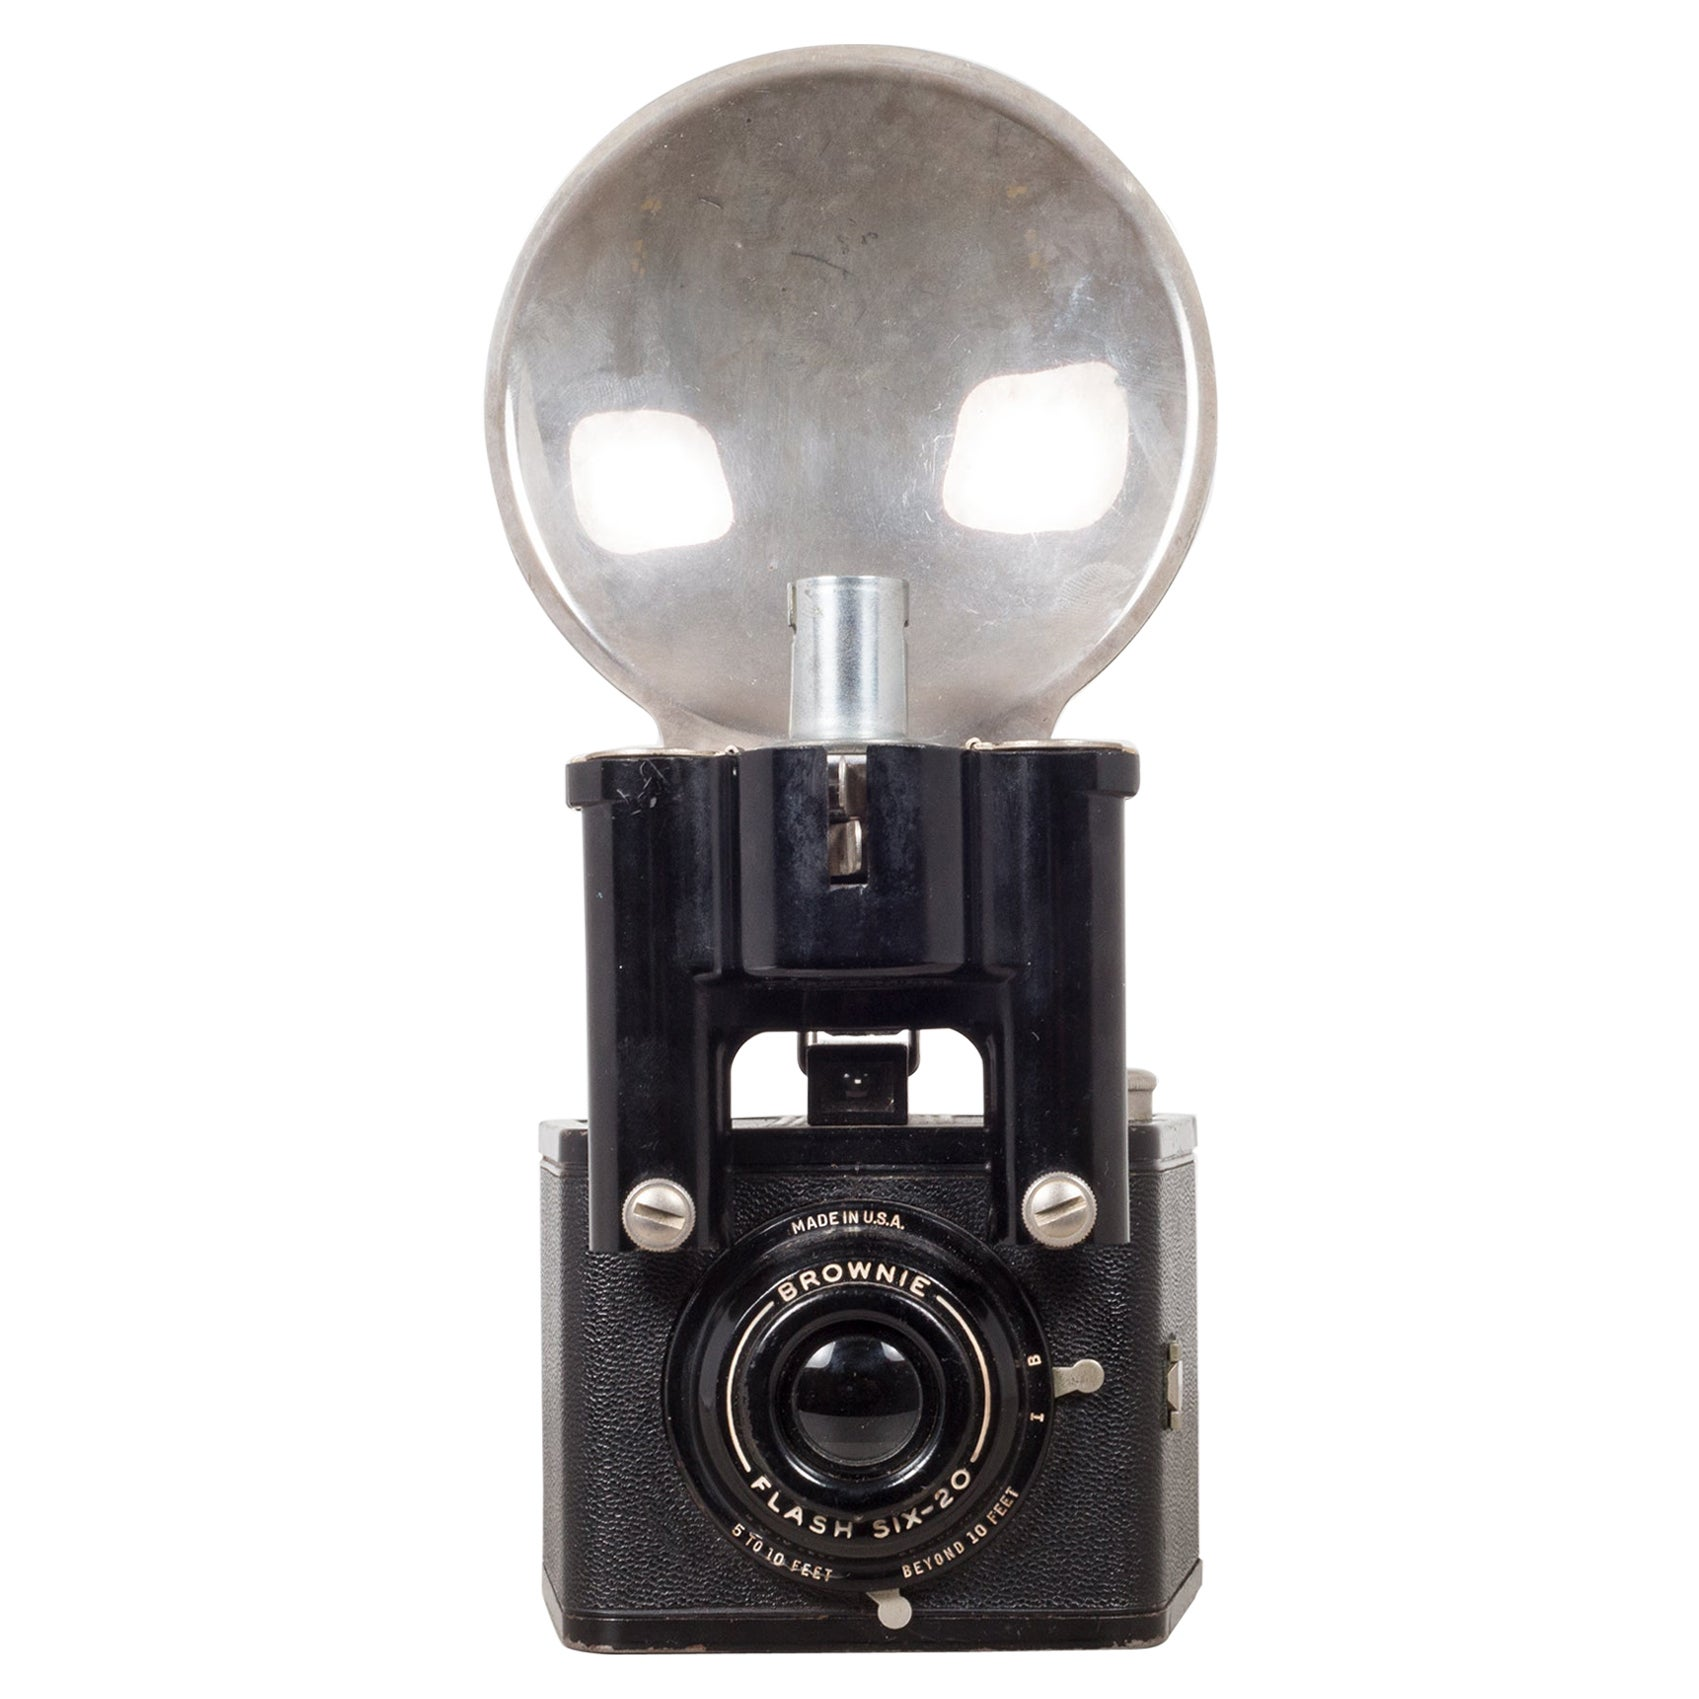 Kodak Brownie Six-20 Flash Camera, circa 1940